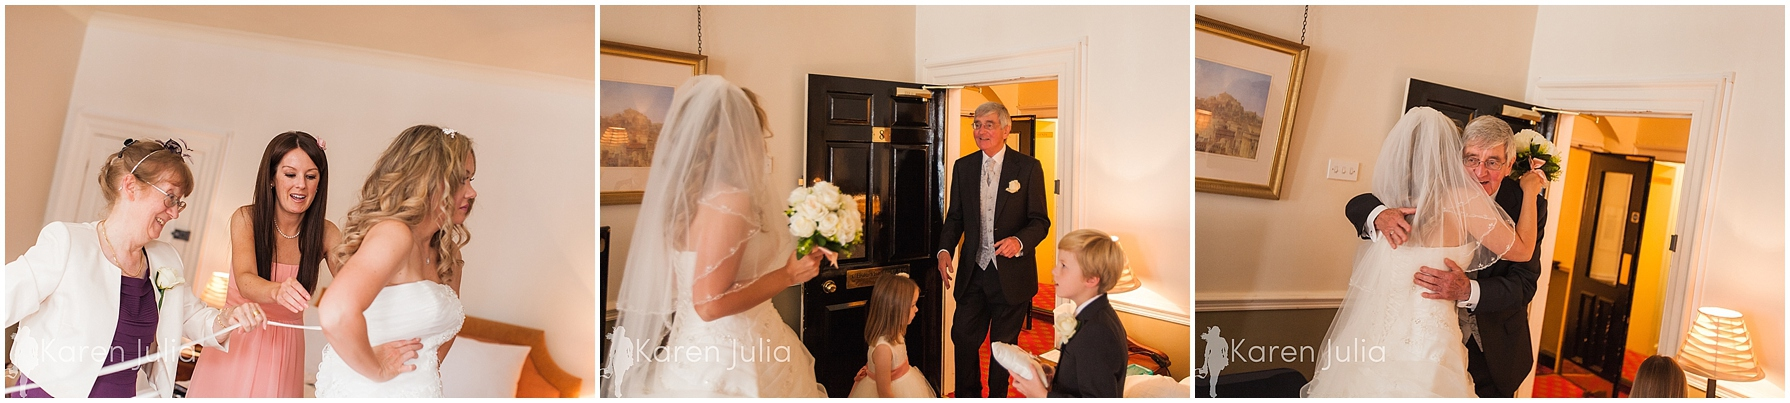 The-Swan-Hotel-Wedding-Photography-05